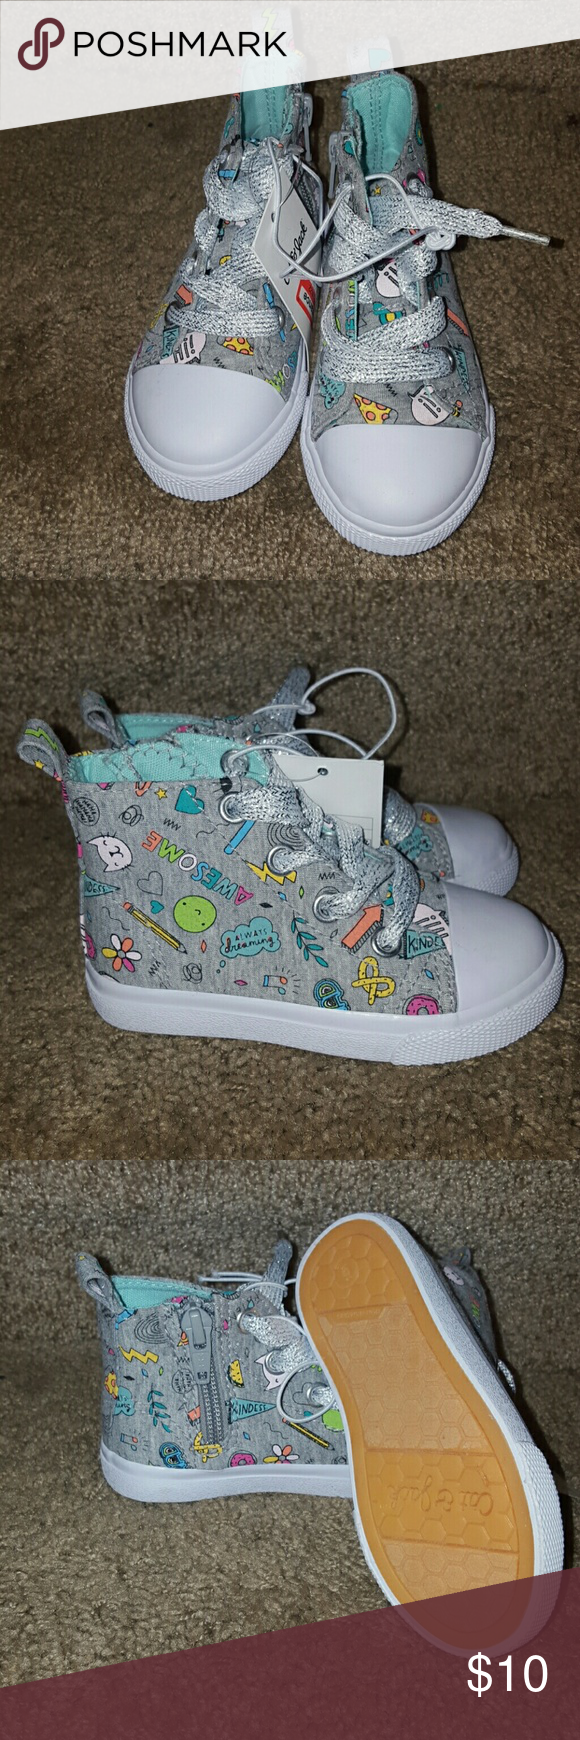 4e6c699d95 Cat and Jack Hi-tops size 6 Cute and stylish Hi-Tops for kids Cat & Jack  Shoes Sneakers